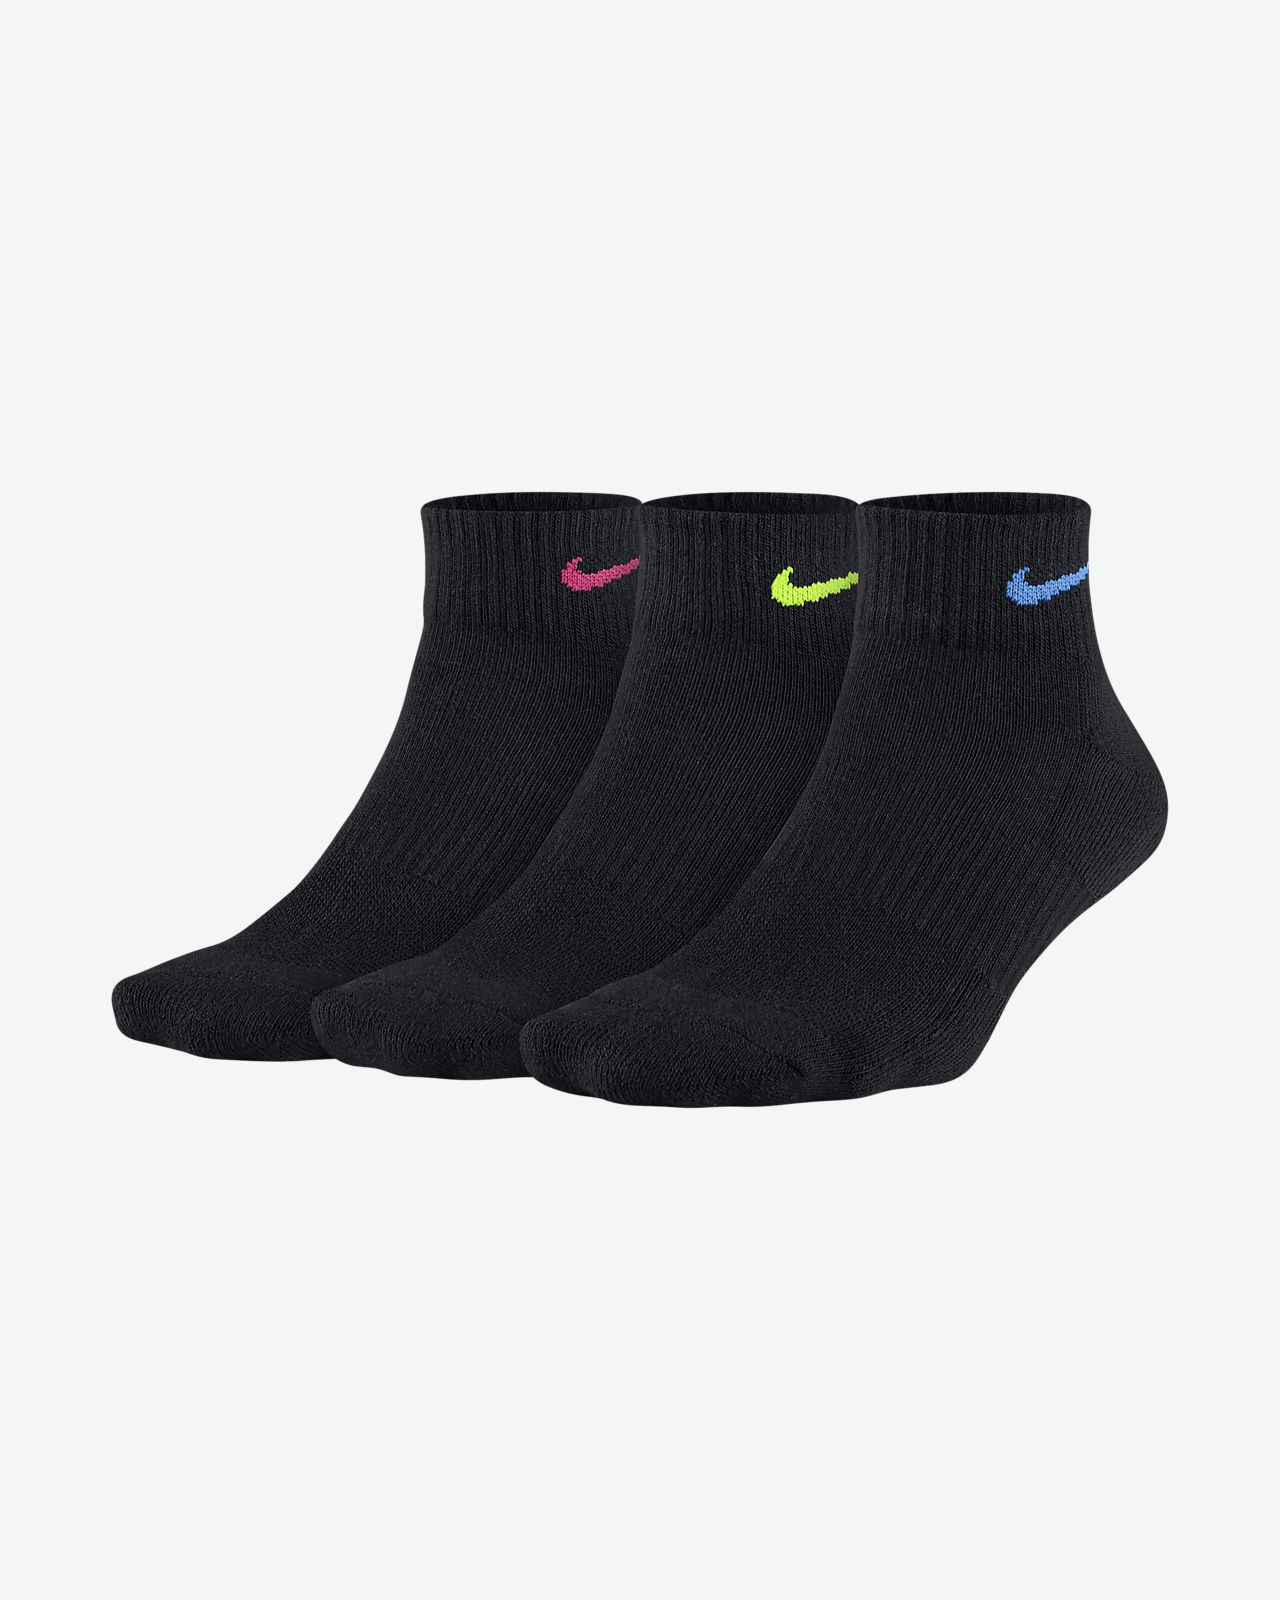 Nike Everyday Cushion Women's Training Ankle Socks (3 Pairs)